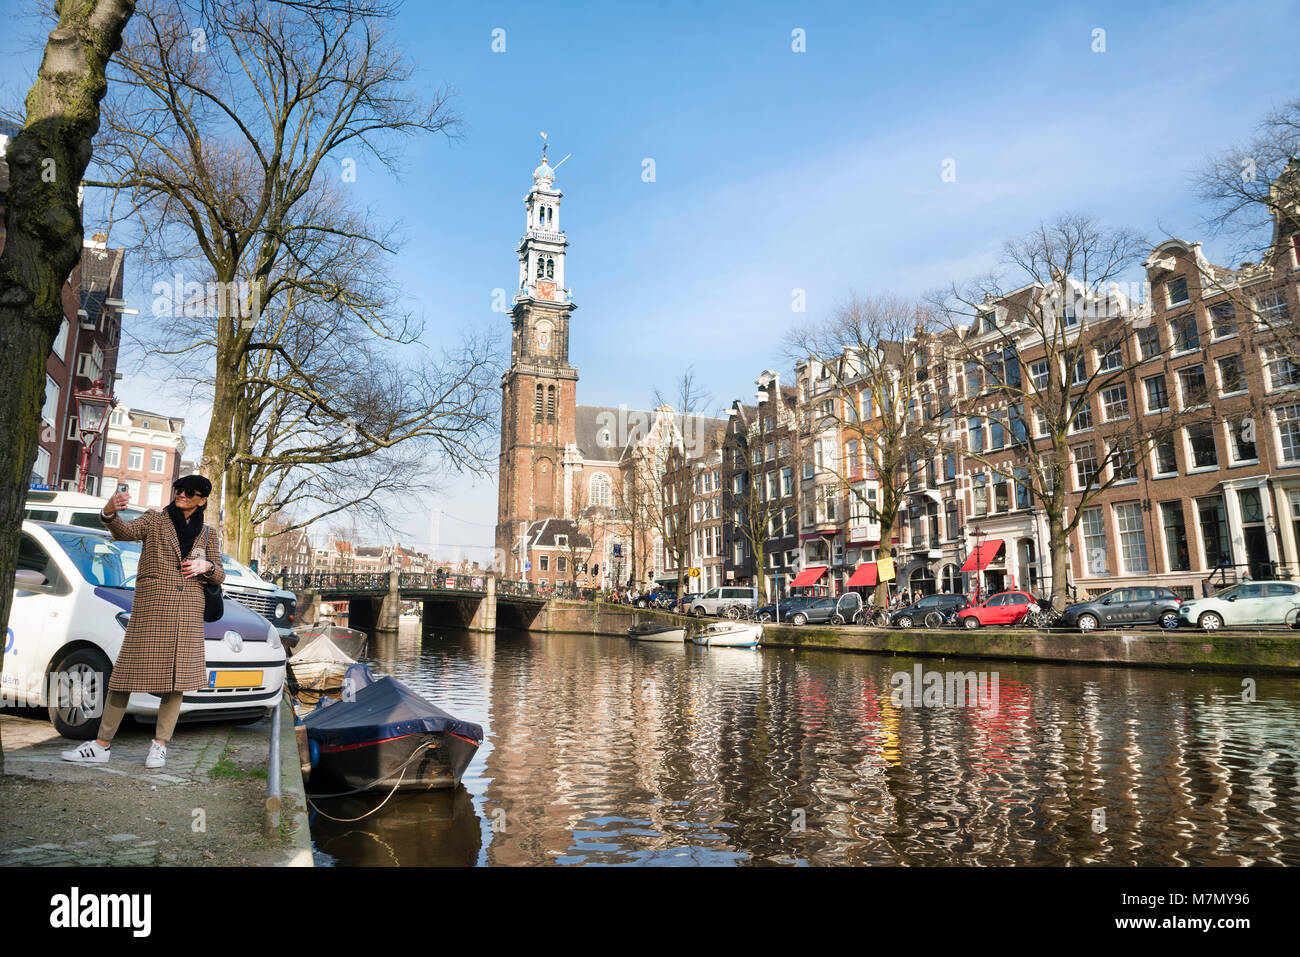 Selfie with The Prinsengracht with the Westertoren / Westerkerk - Stock Image